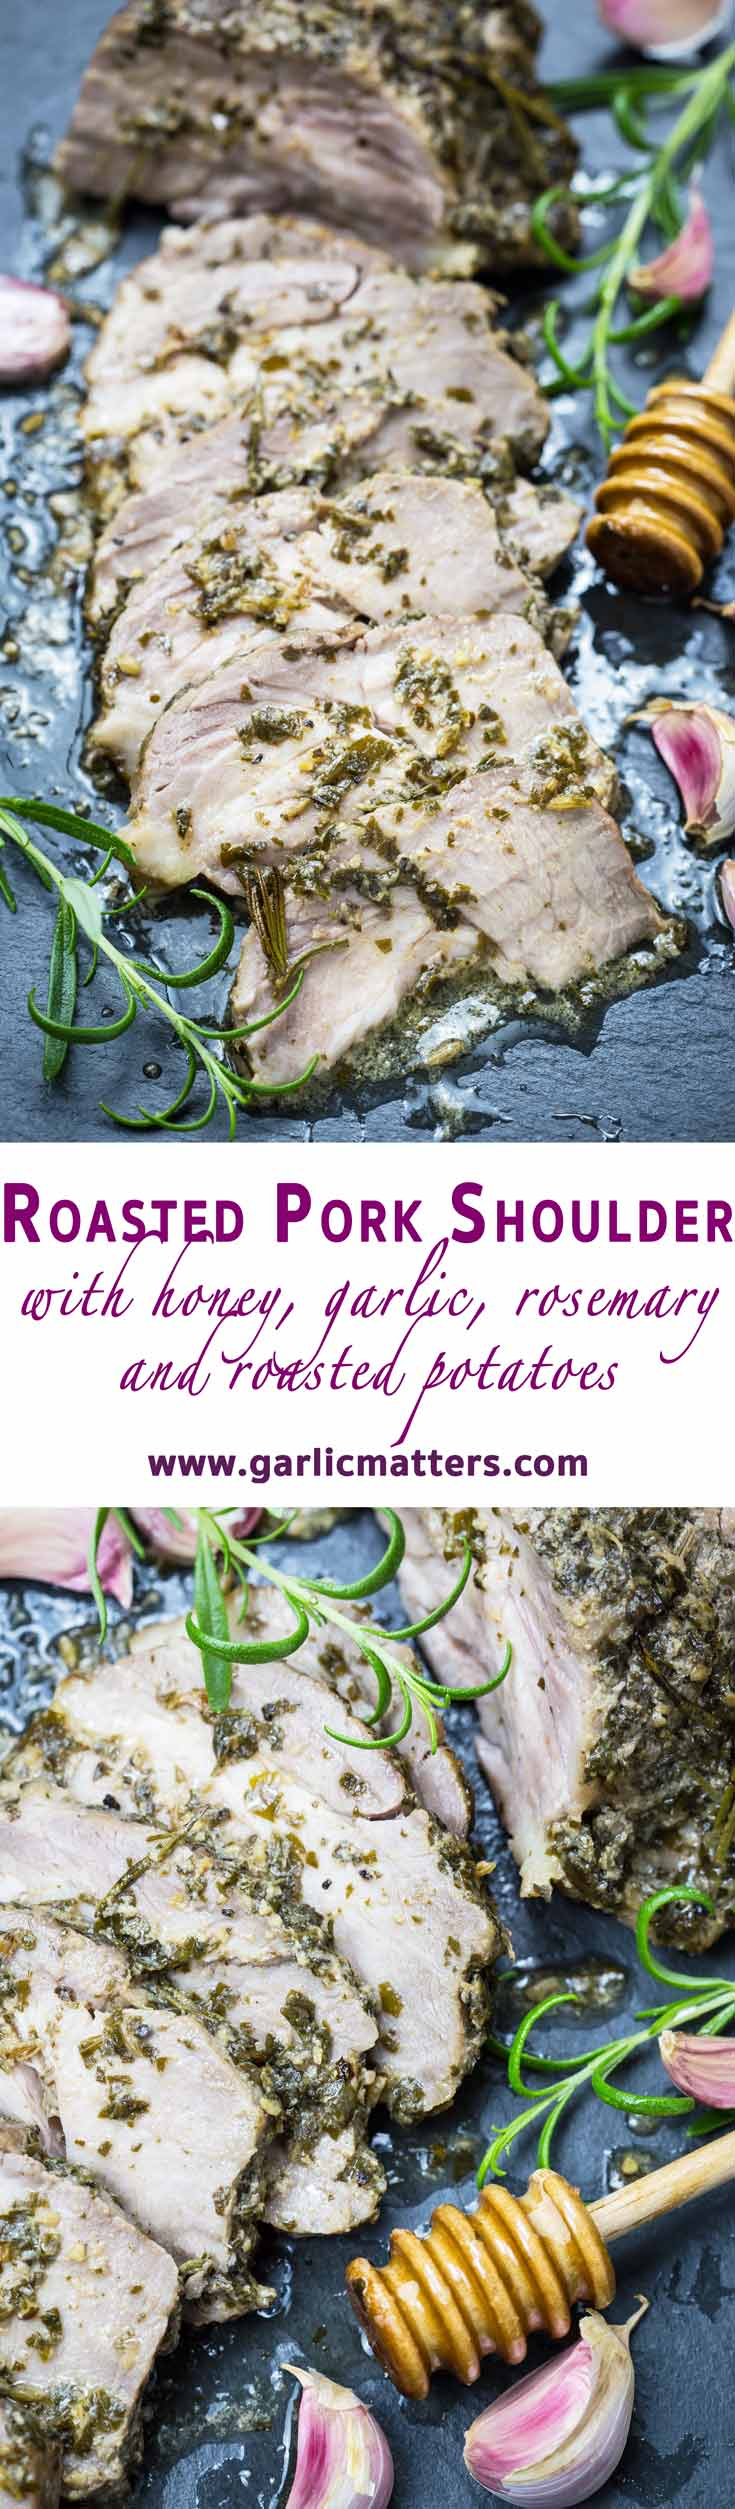 Roasted Pork Shoulder with Honey, Garlic and Rosemary is a restaurant quality dish recipe, yet really easy to make! Easy dinner for 4 ready in 1h.